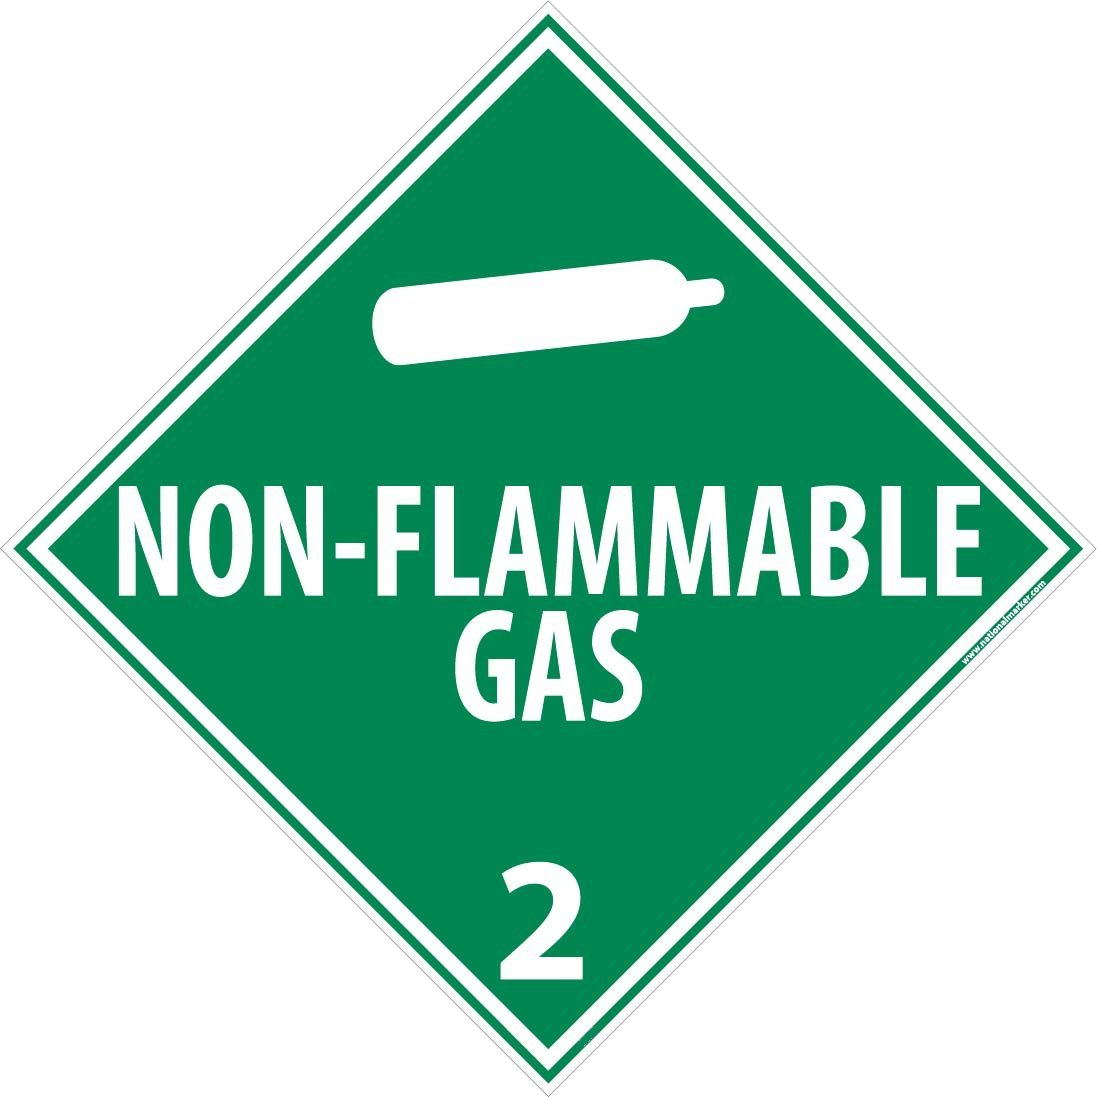 class 2 gases placards and labels according 49 cfr 173 2 hazmat tool. Black Bedroom Furniture Sets. Home Design Ideas